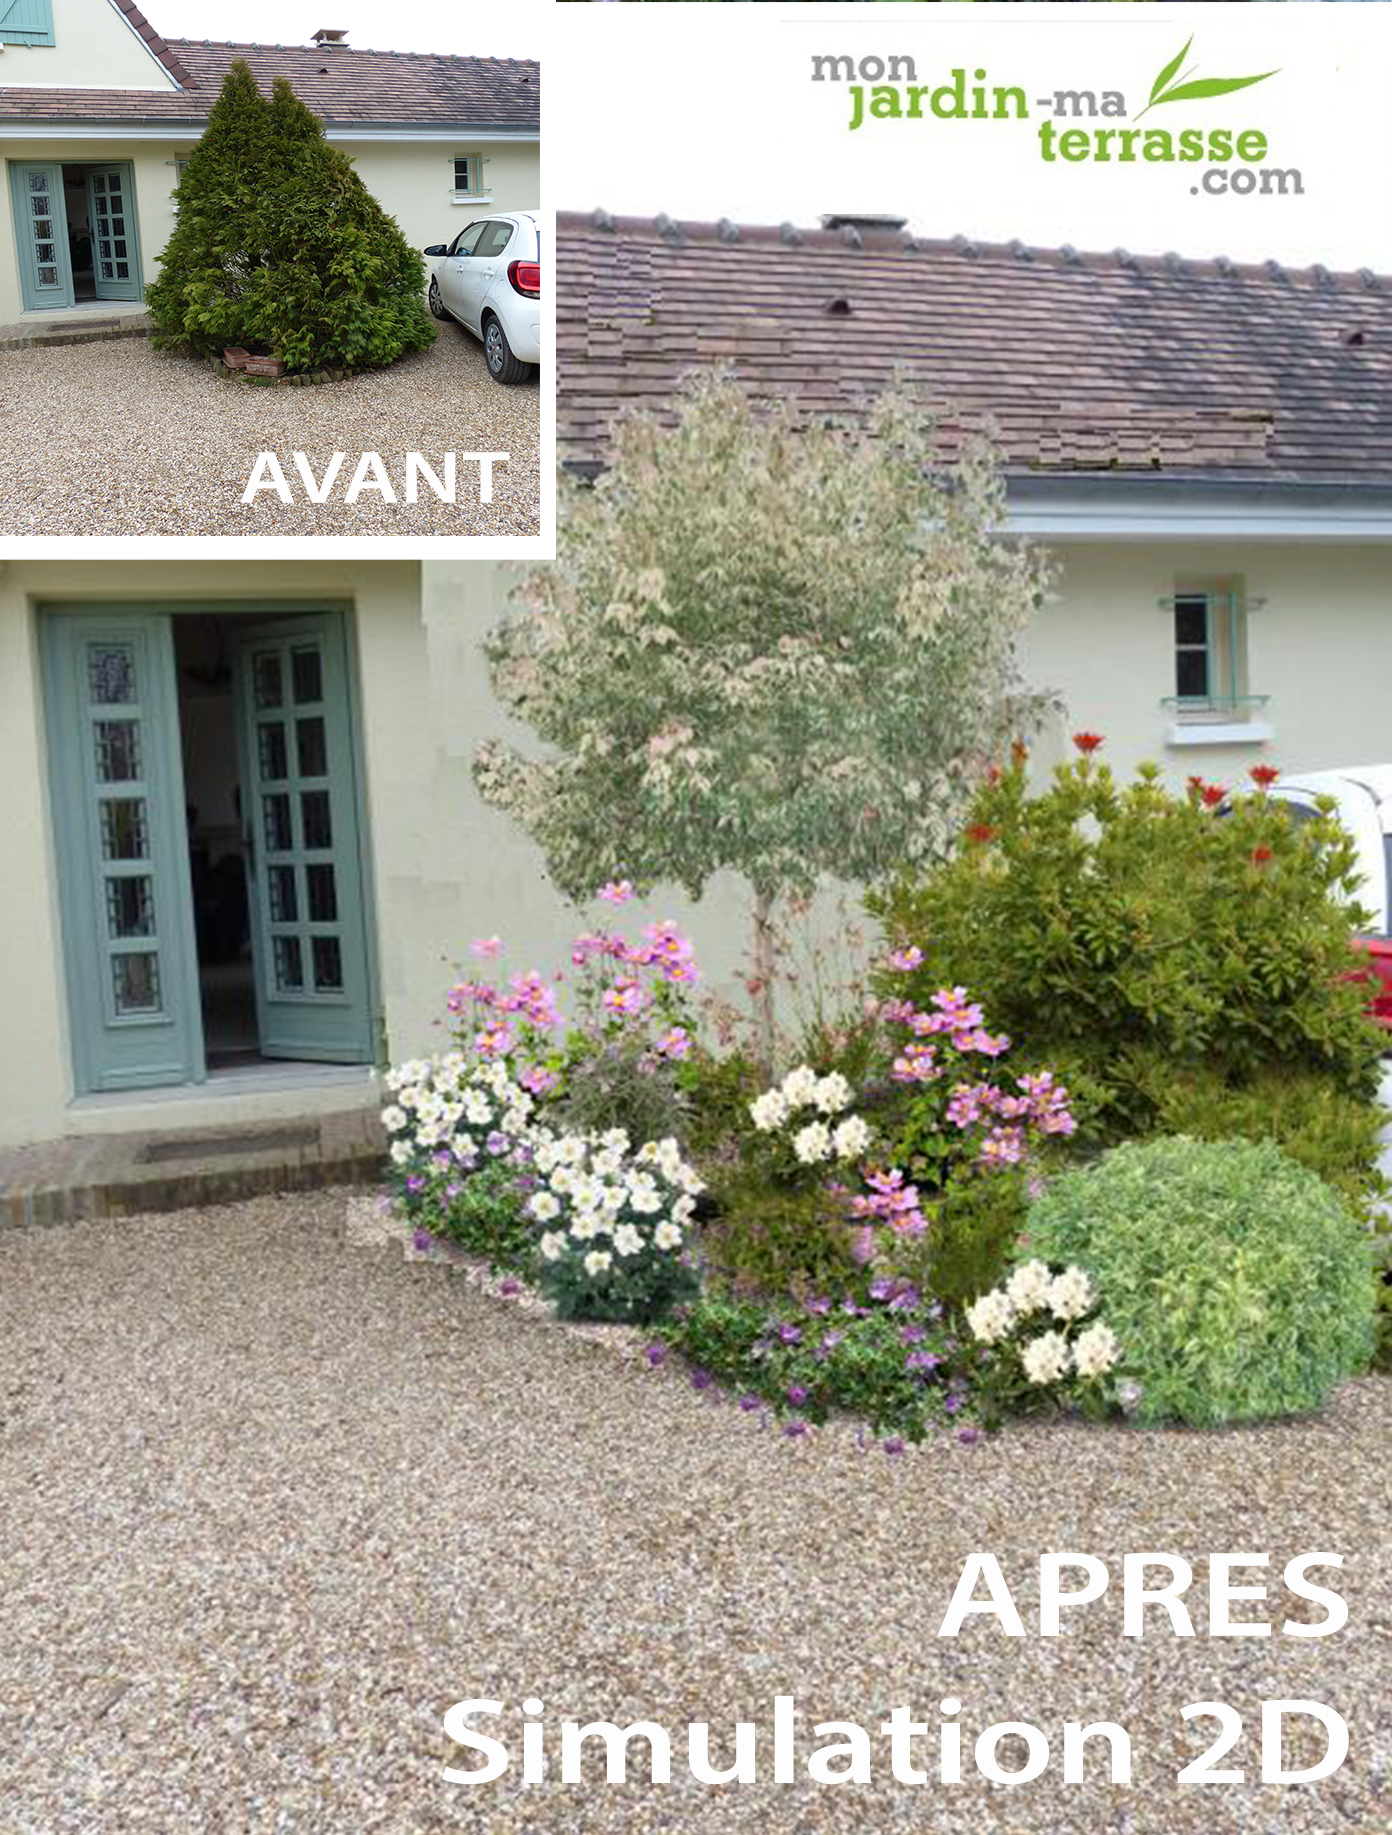 Am nagement d entr e ext rieur de maison monjardin for Amenagement entree de maison